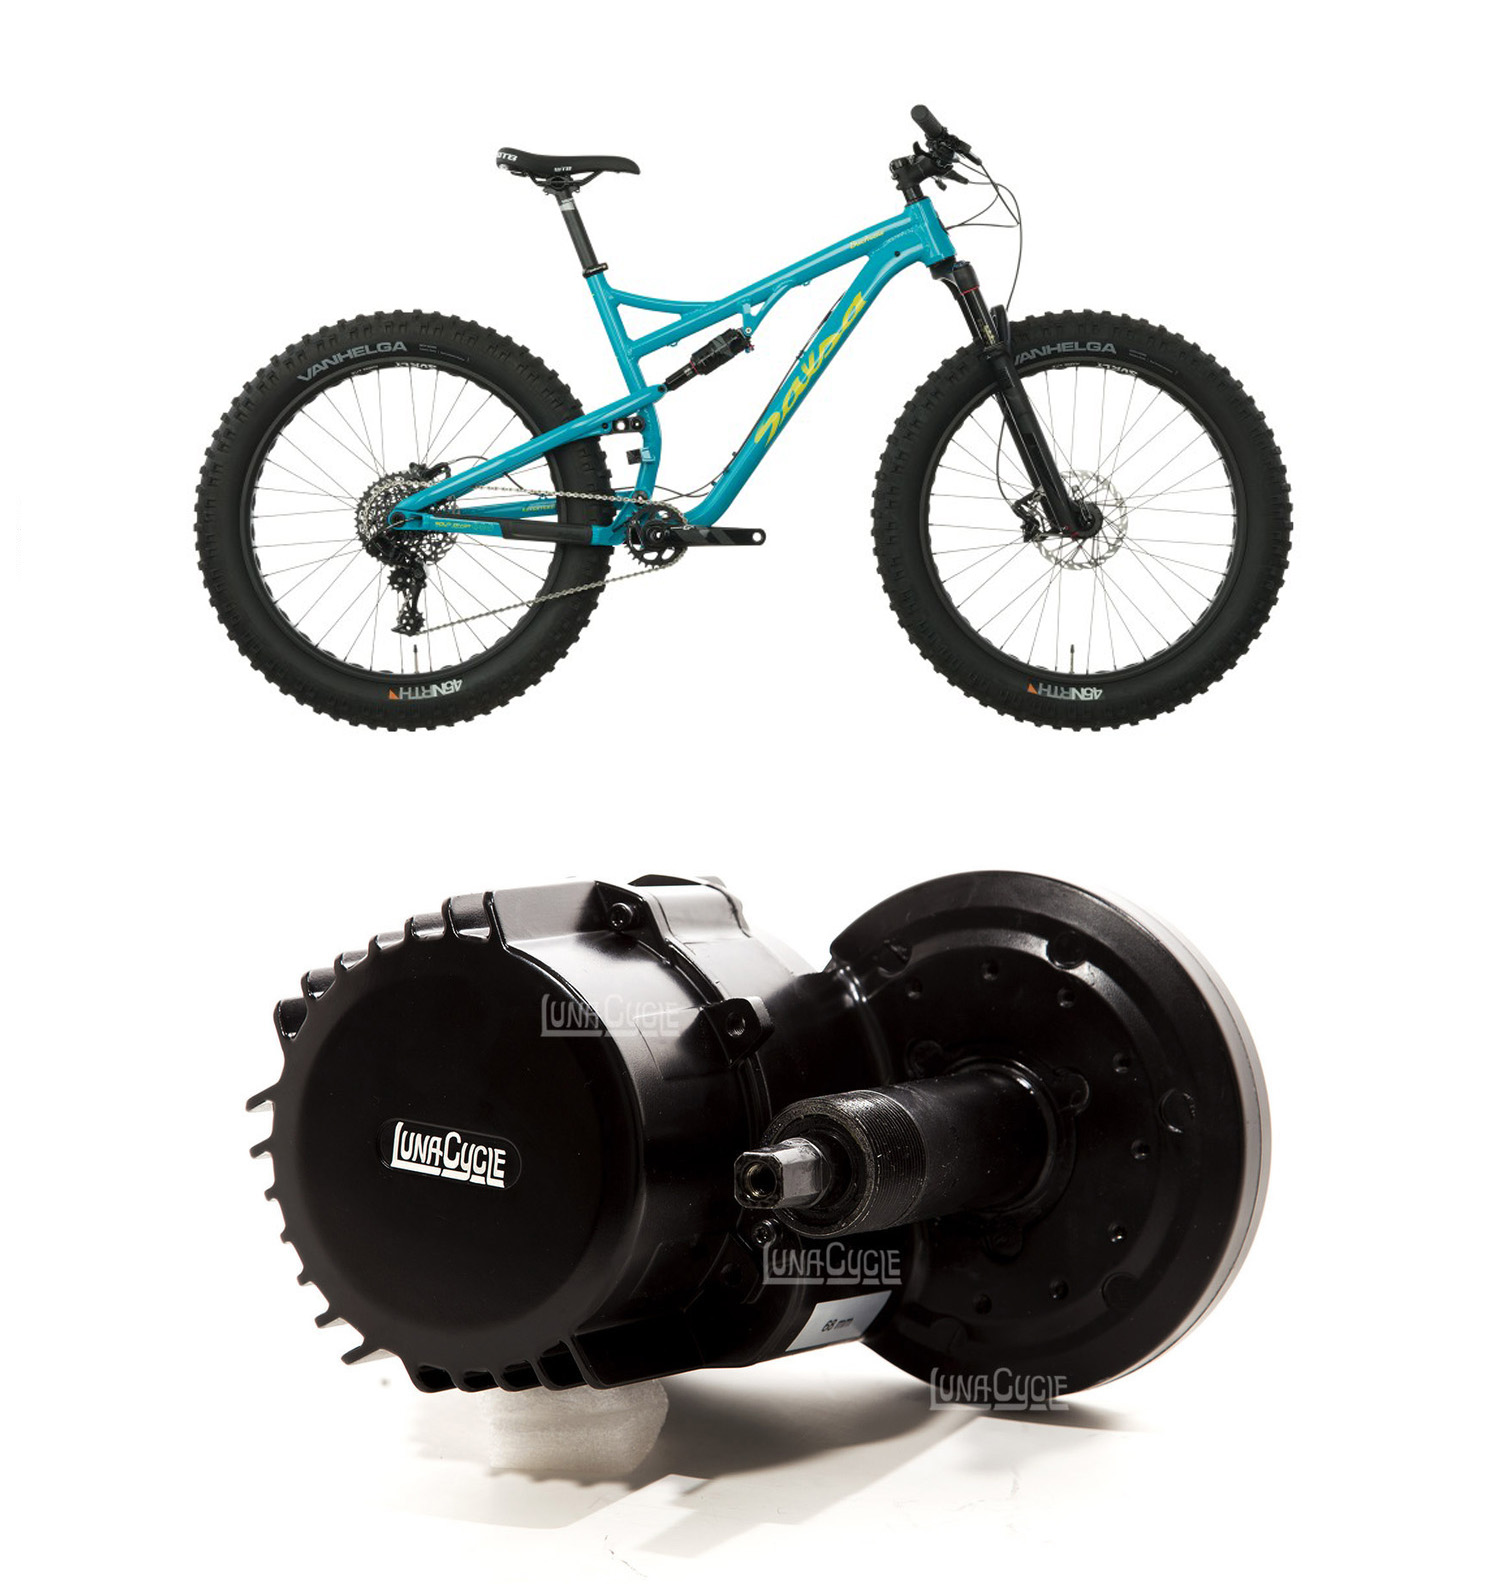 Crazy Fat E-Bike Pricing Exposed | ELECTRICBIKE COM